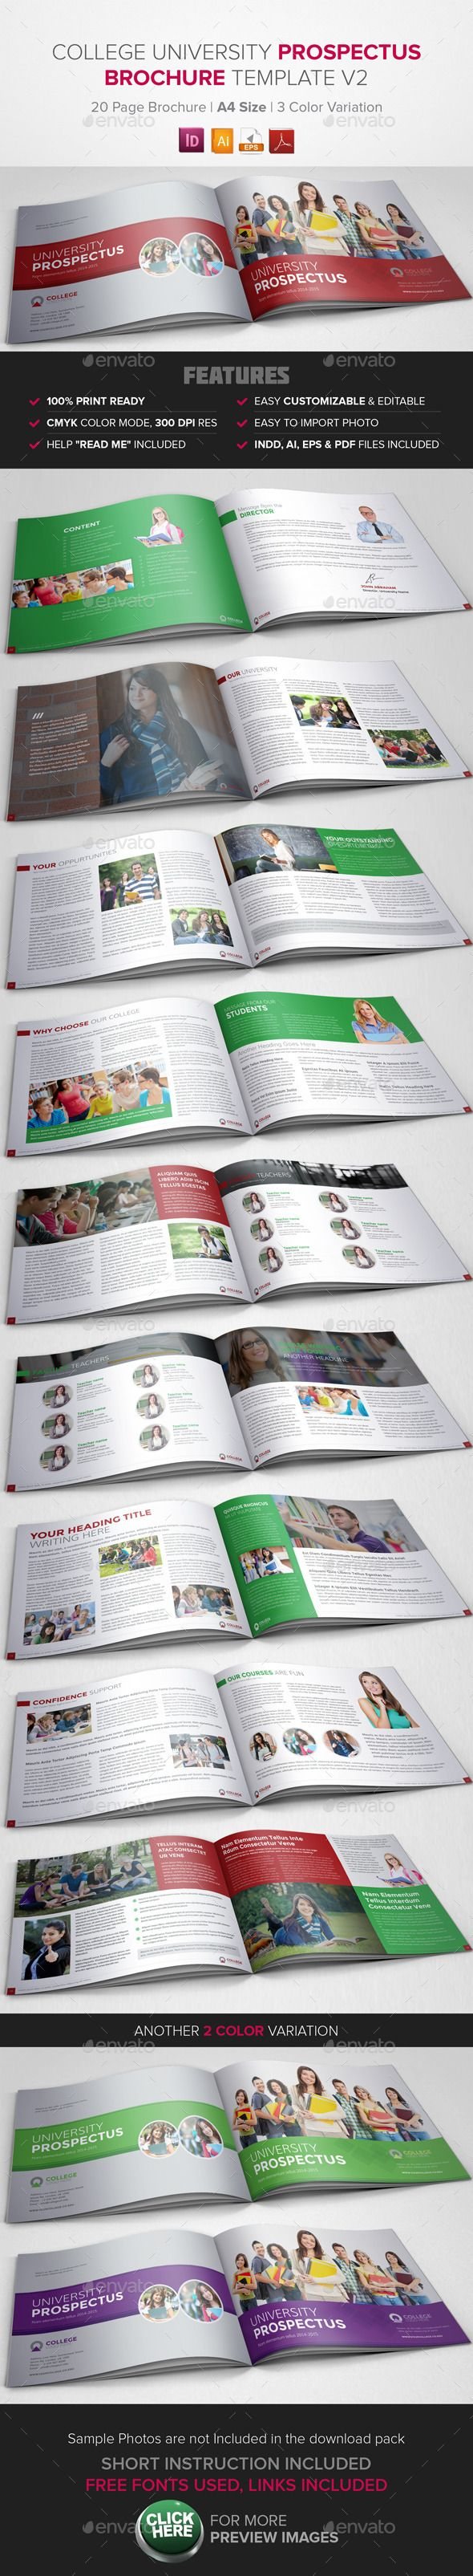 17 best images about school collateral on pinterest for College brochure templates free download